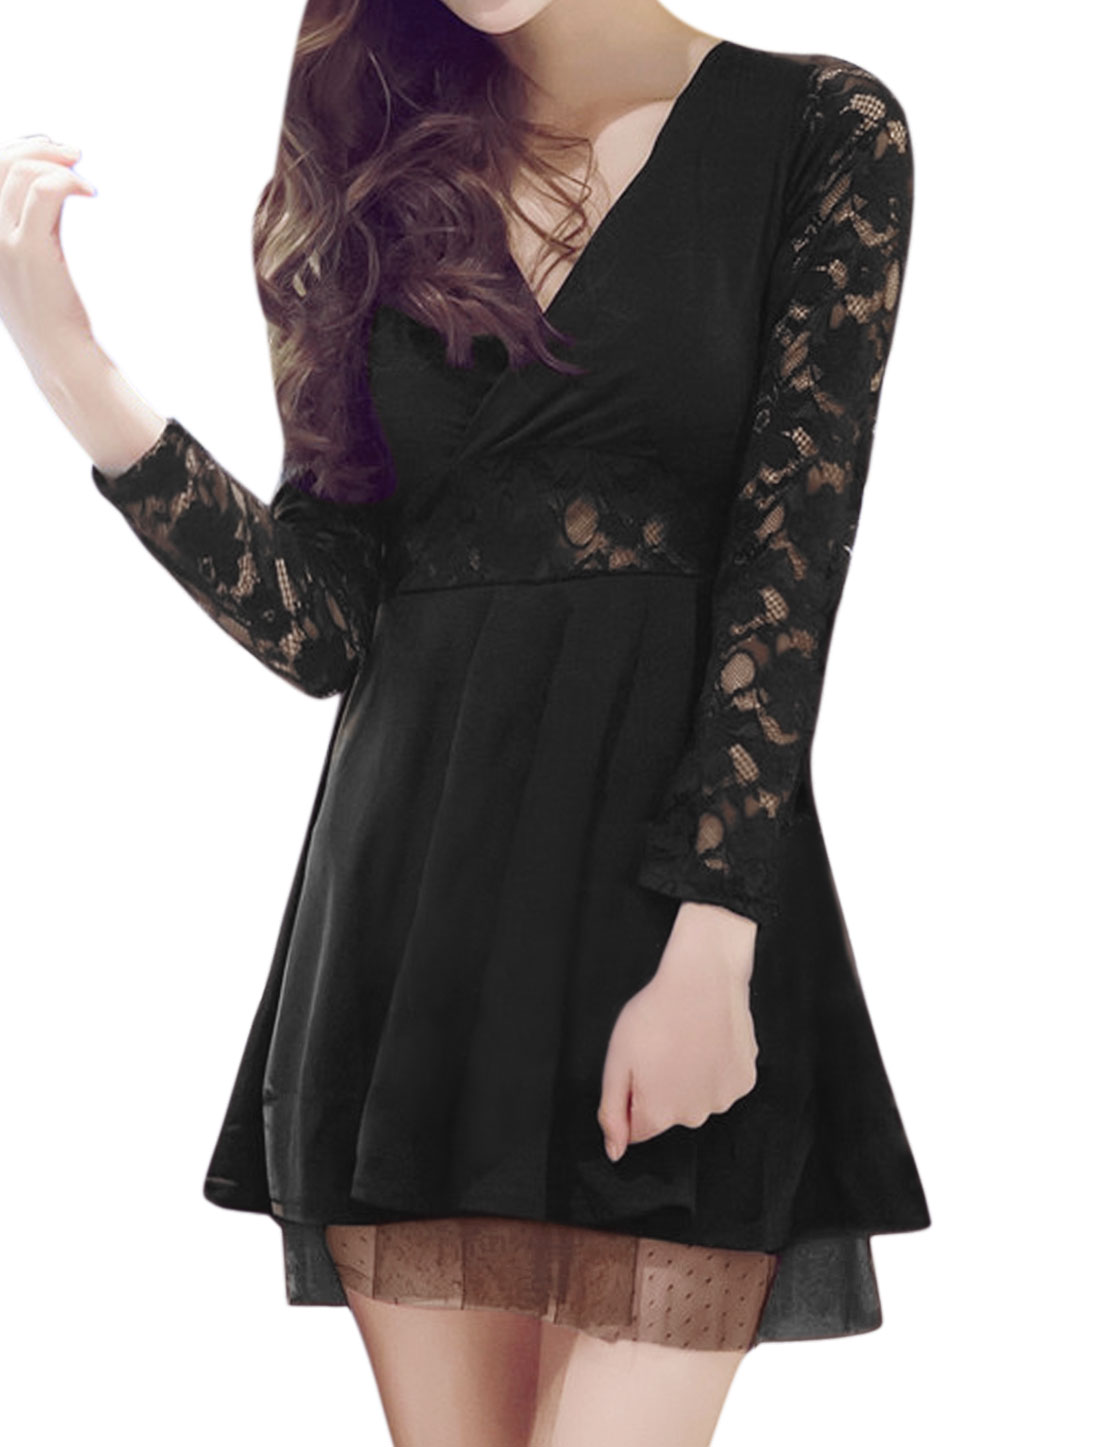 Ladies Crossover V Neck See Through Lace Flare Dress Black XS